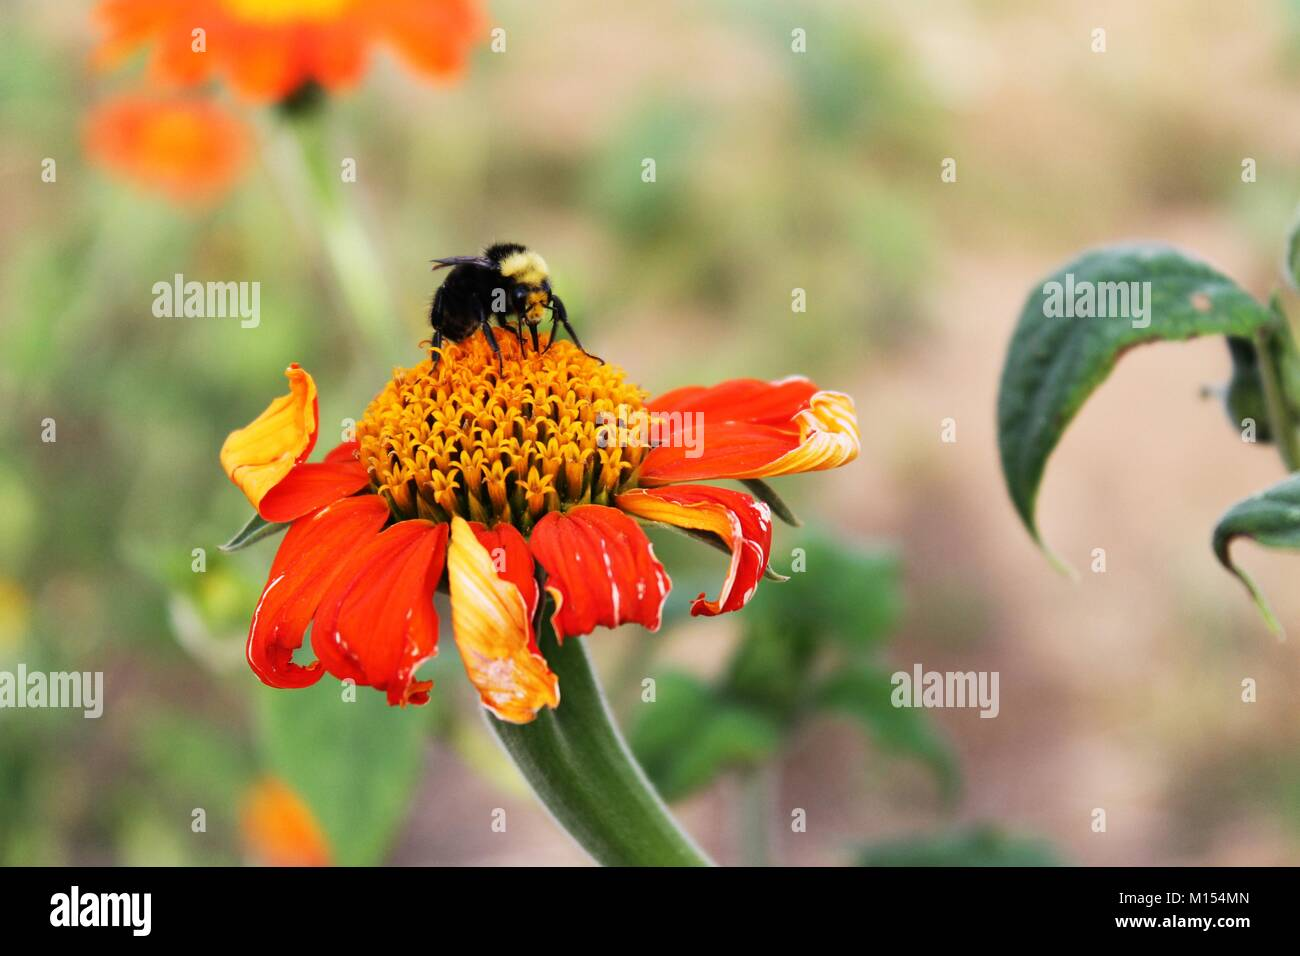 bee pollination on orange daisy in garden - Stock Image